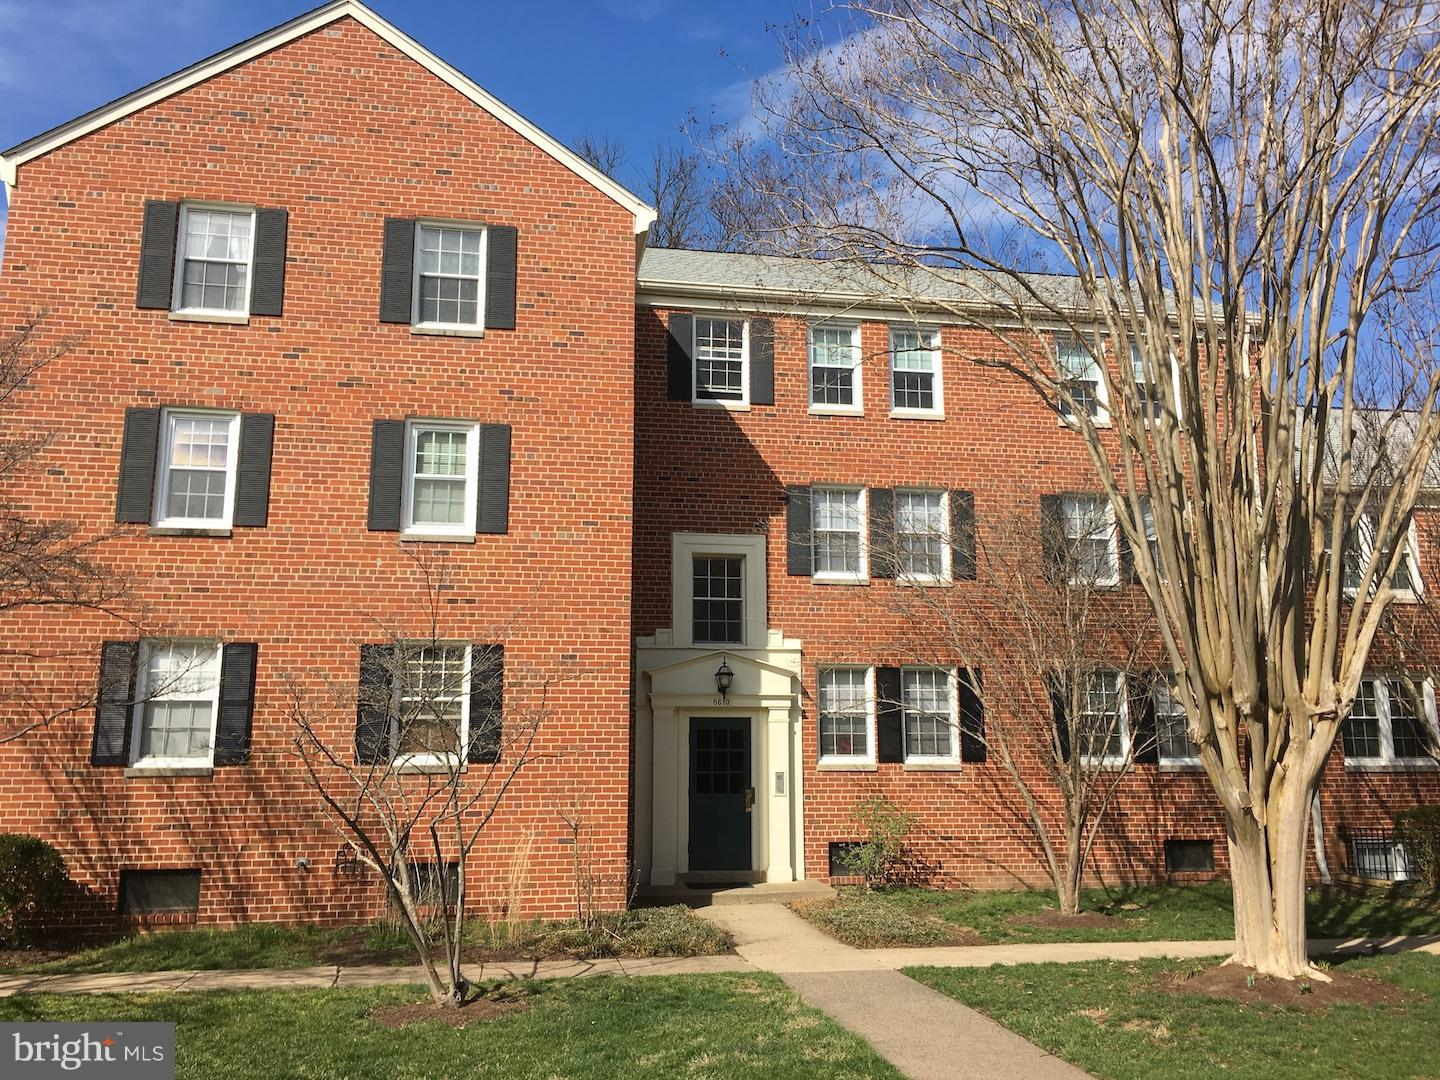 Top floor unit, quiet with beautiful views in all directions. Kitchen and bathroom updated. Excellent laundry and largest storage unit on premises. Fees include water, trash, pool, playground, tennis courts. Convenient walking to restaurants and bike path. Easy commute to Metro and GW Parkway.